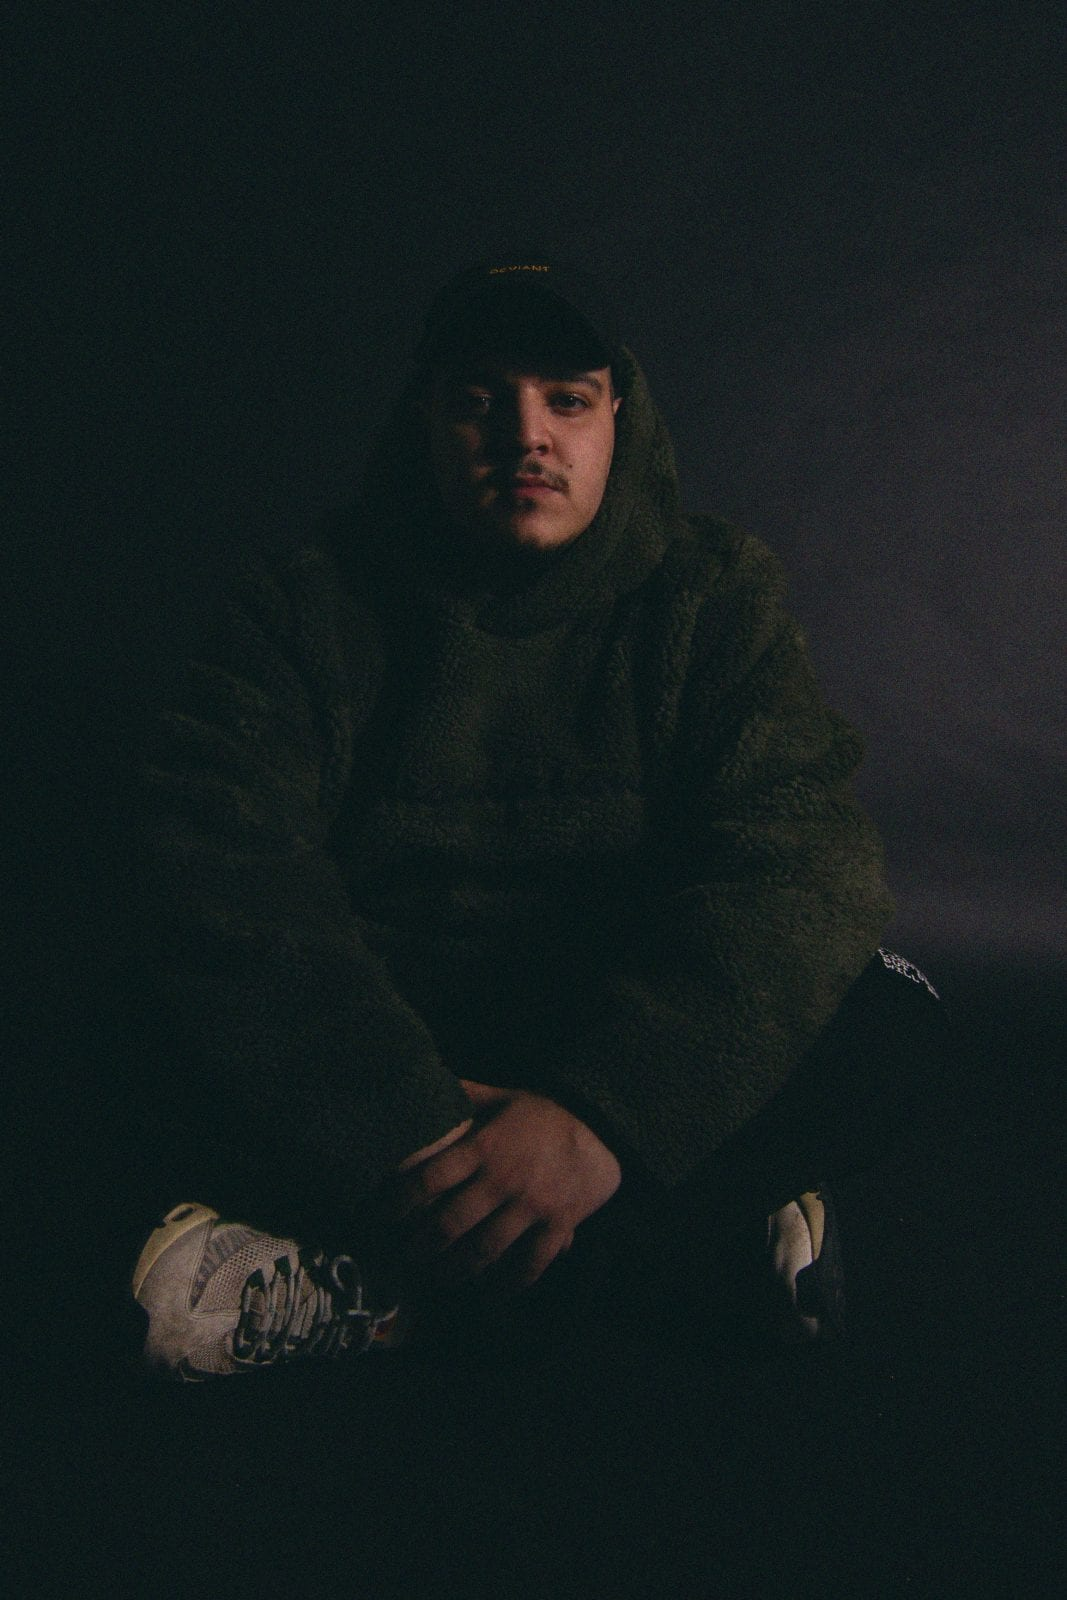 The Manchester producer at the top of the drum and bass game, The Manc